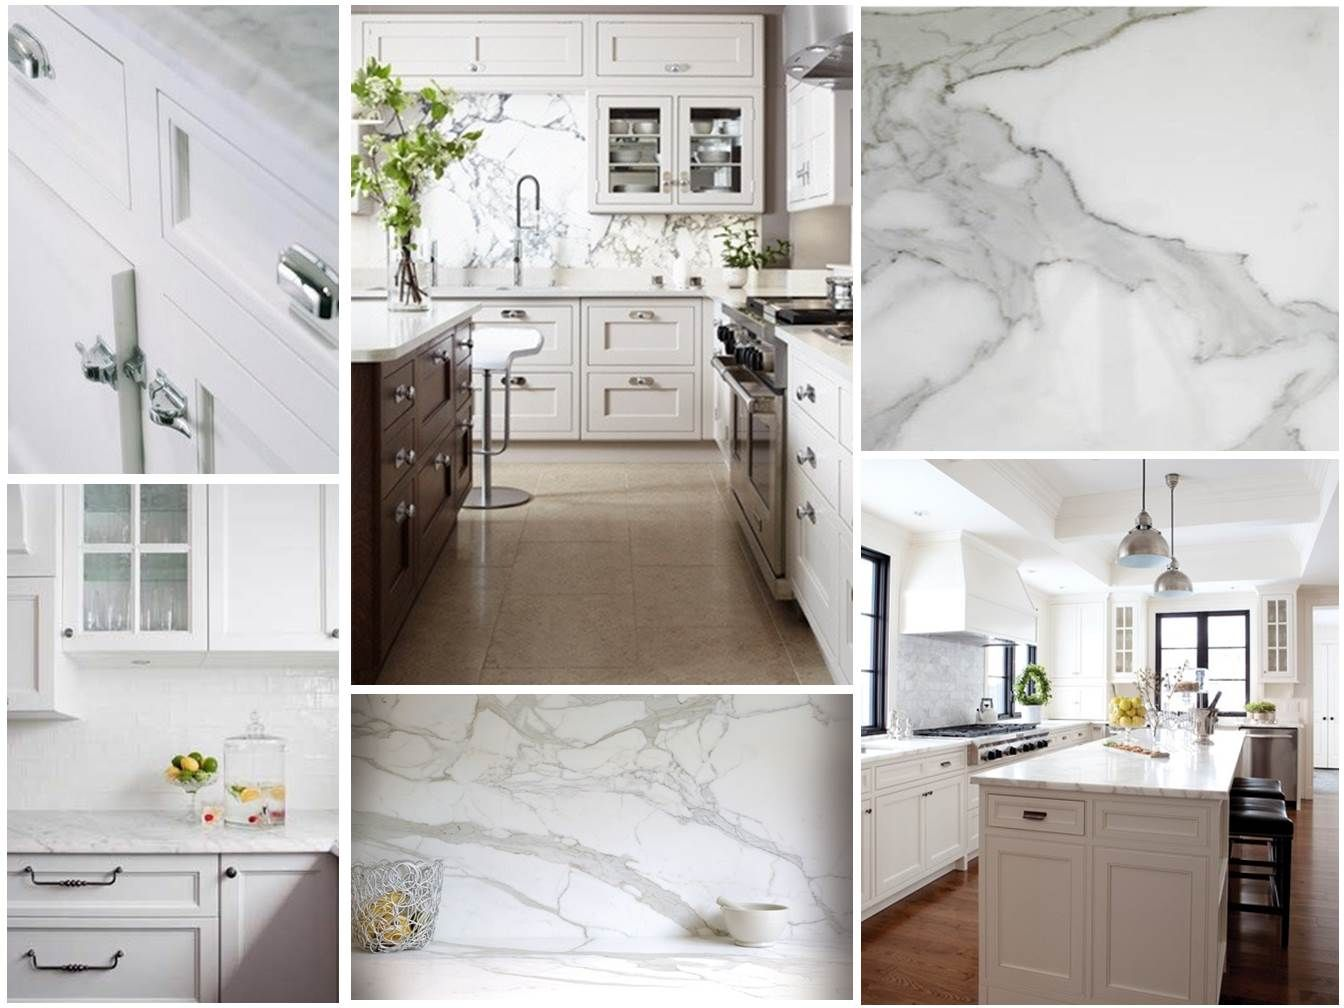 french provincial kitchen mood board. sync design melbourne ...